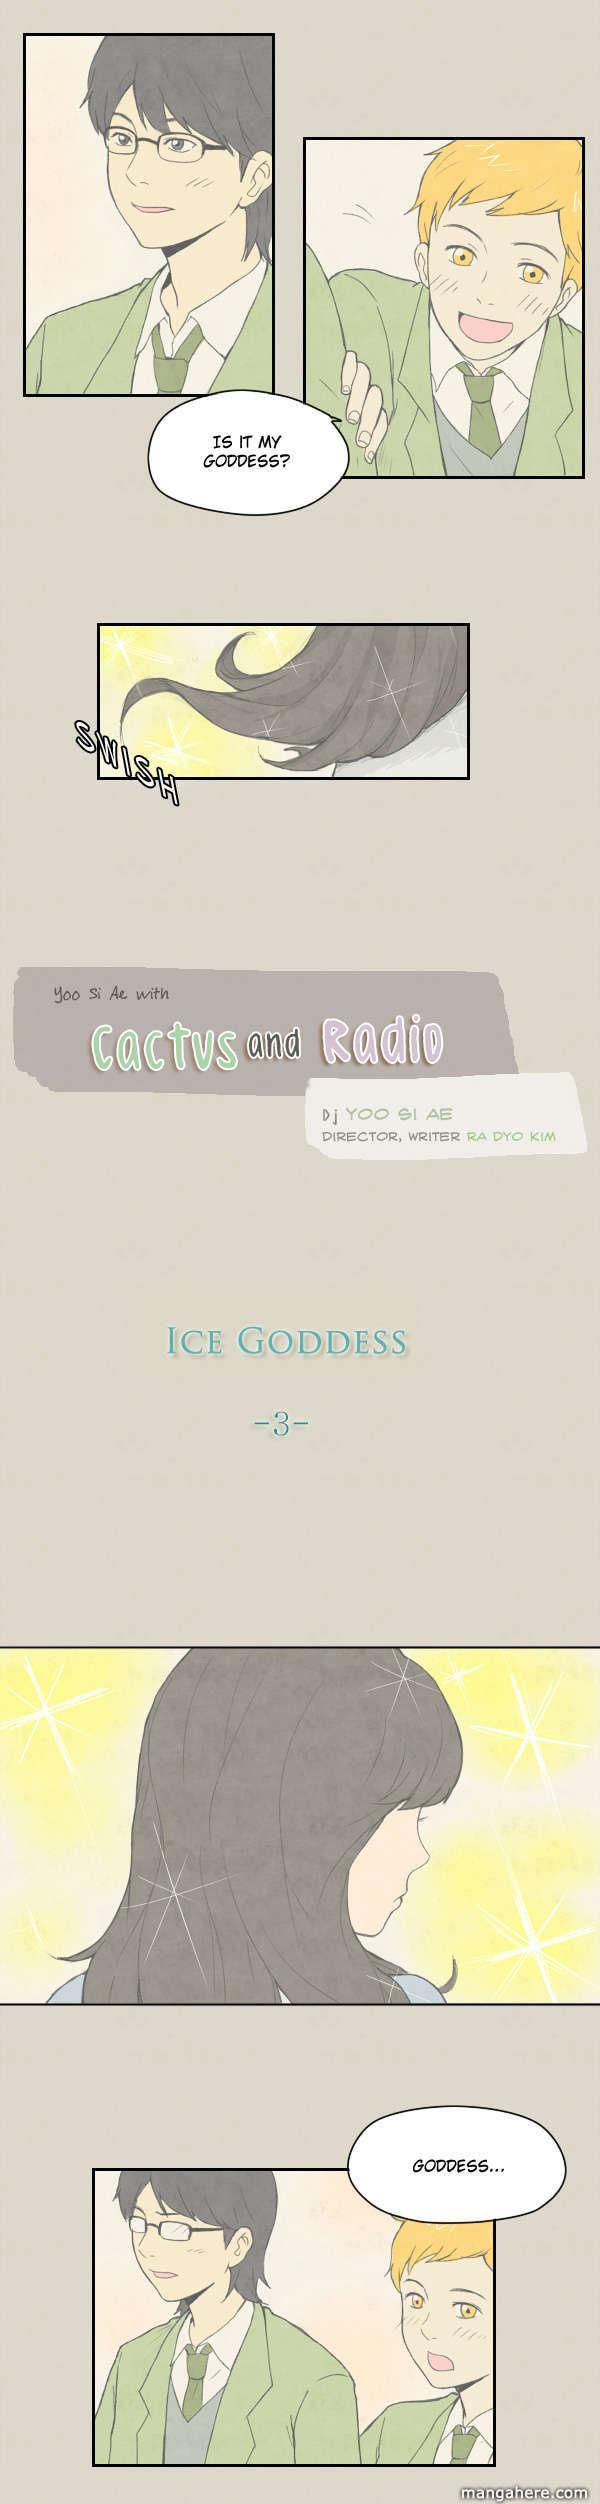 Cactus and Radio 32 Page 3